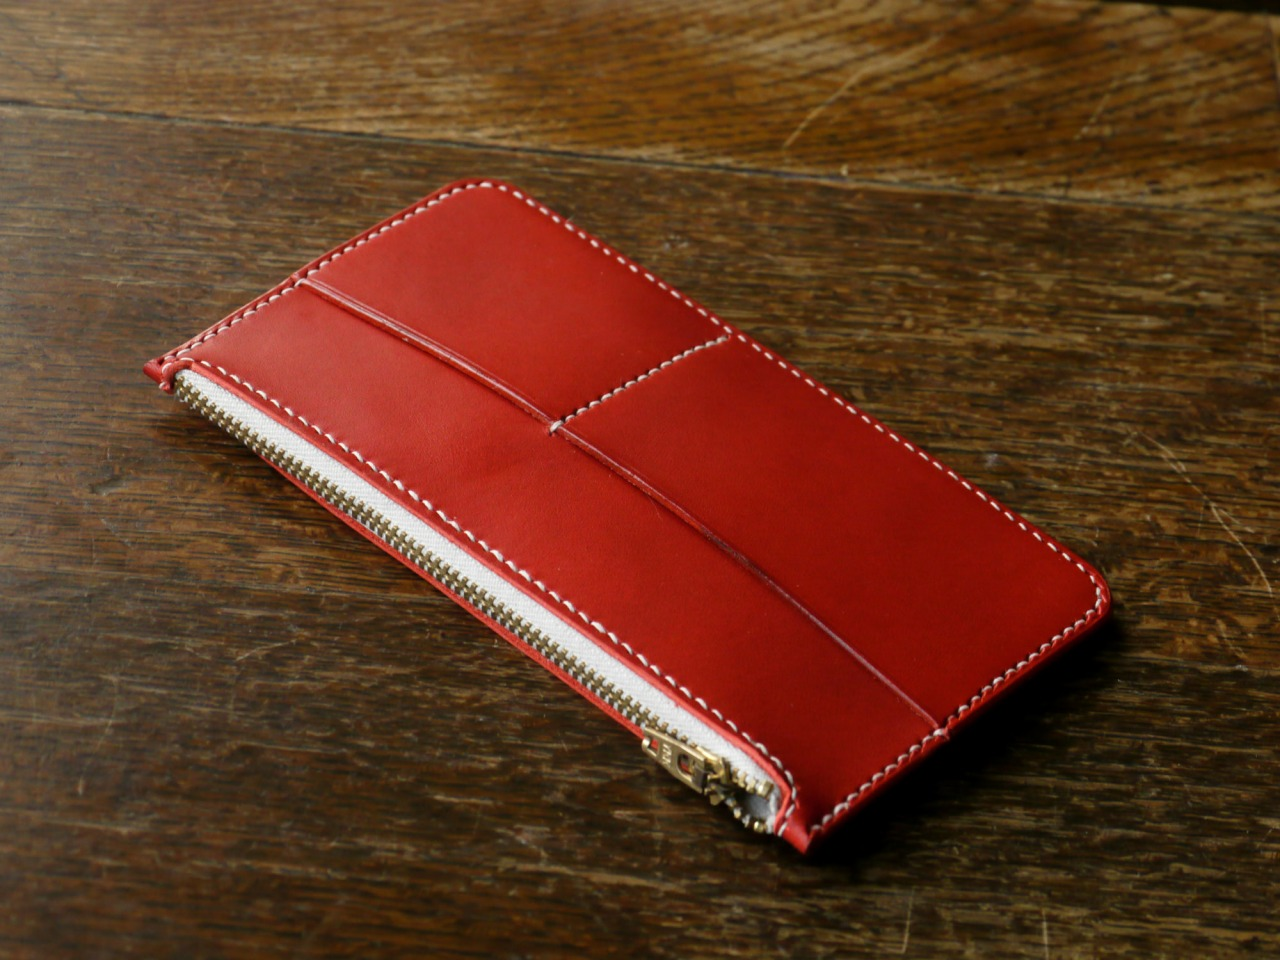 This Zip Wallet and much more will be available to purchase on M.E.S stall at Portobello Market / Golborne Road between 15th - 24th of December, plus further sample sale and one off items, all ready to go!